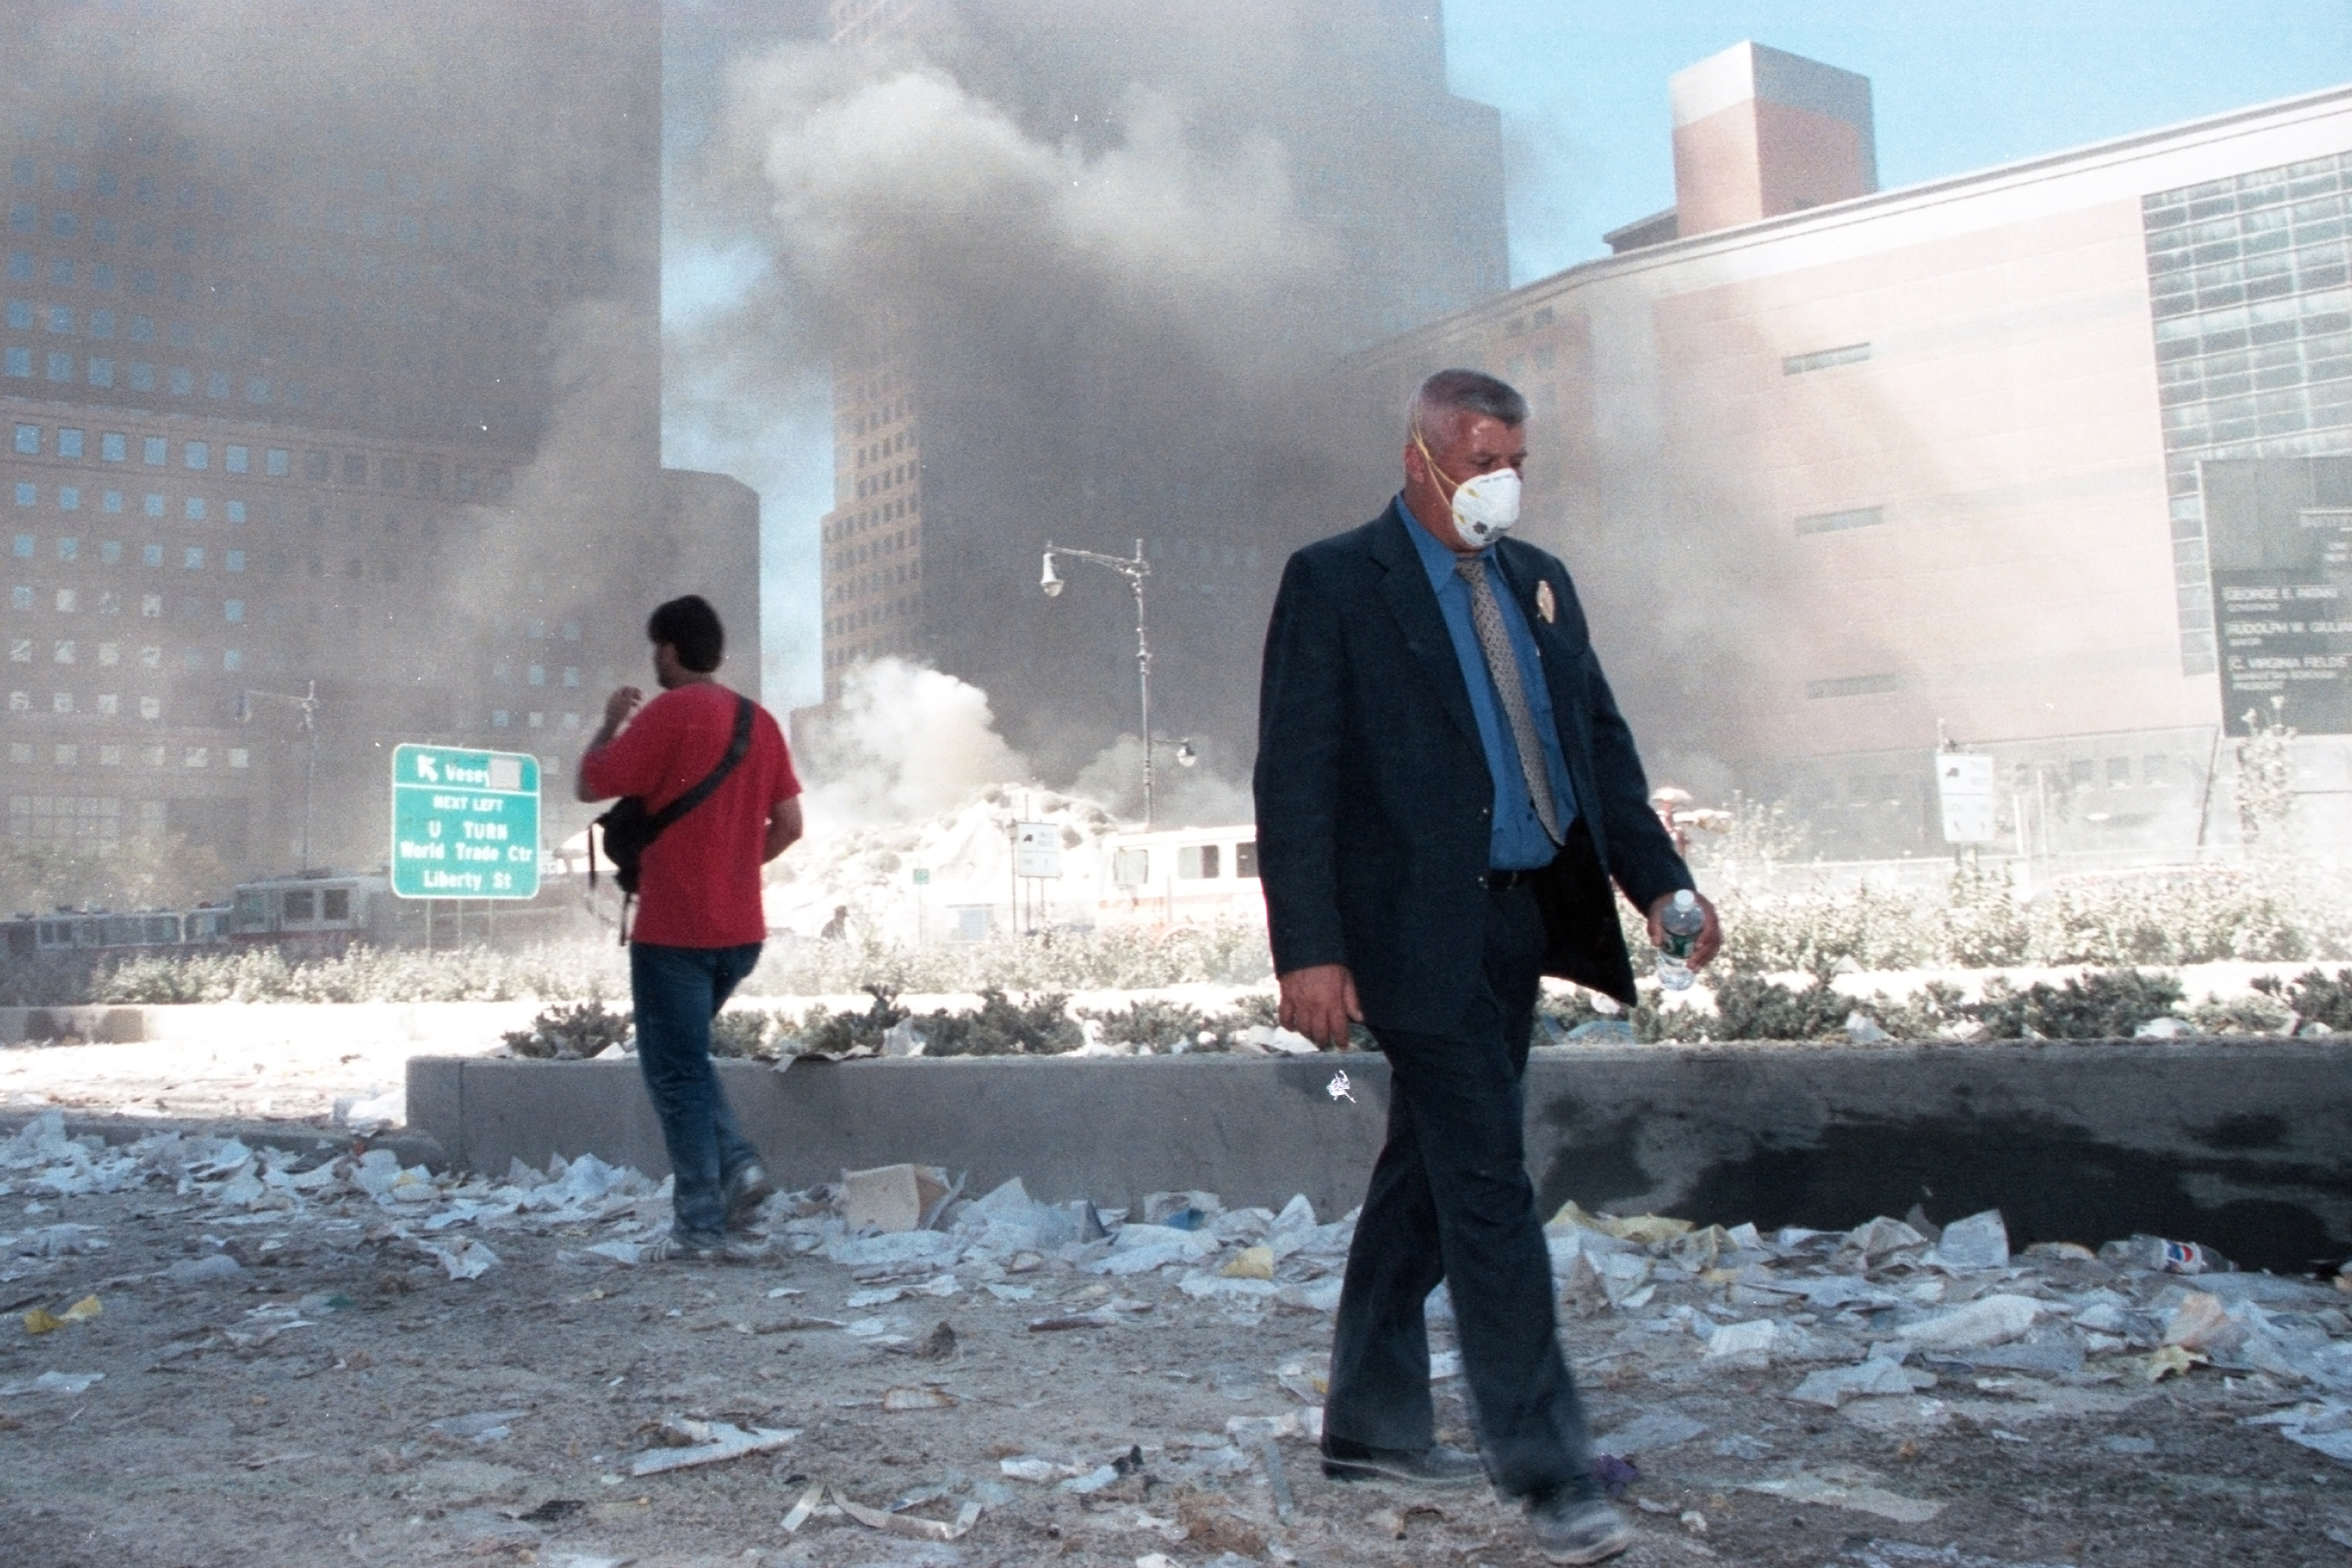 People walk around Ground Zero after the collapse of the Twin Towers on Sept. 11, 2001.